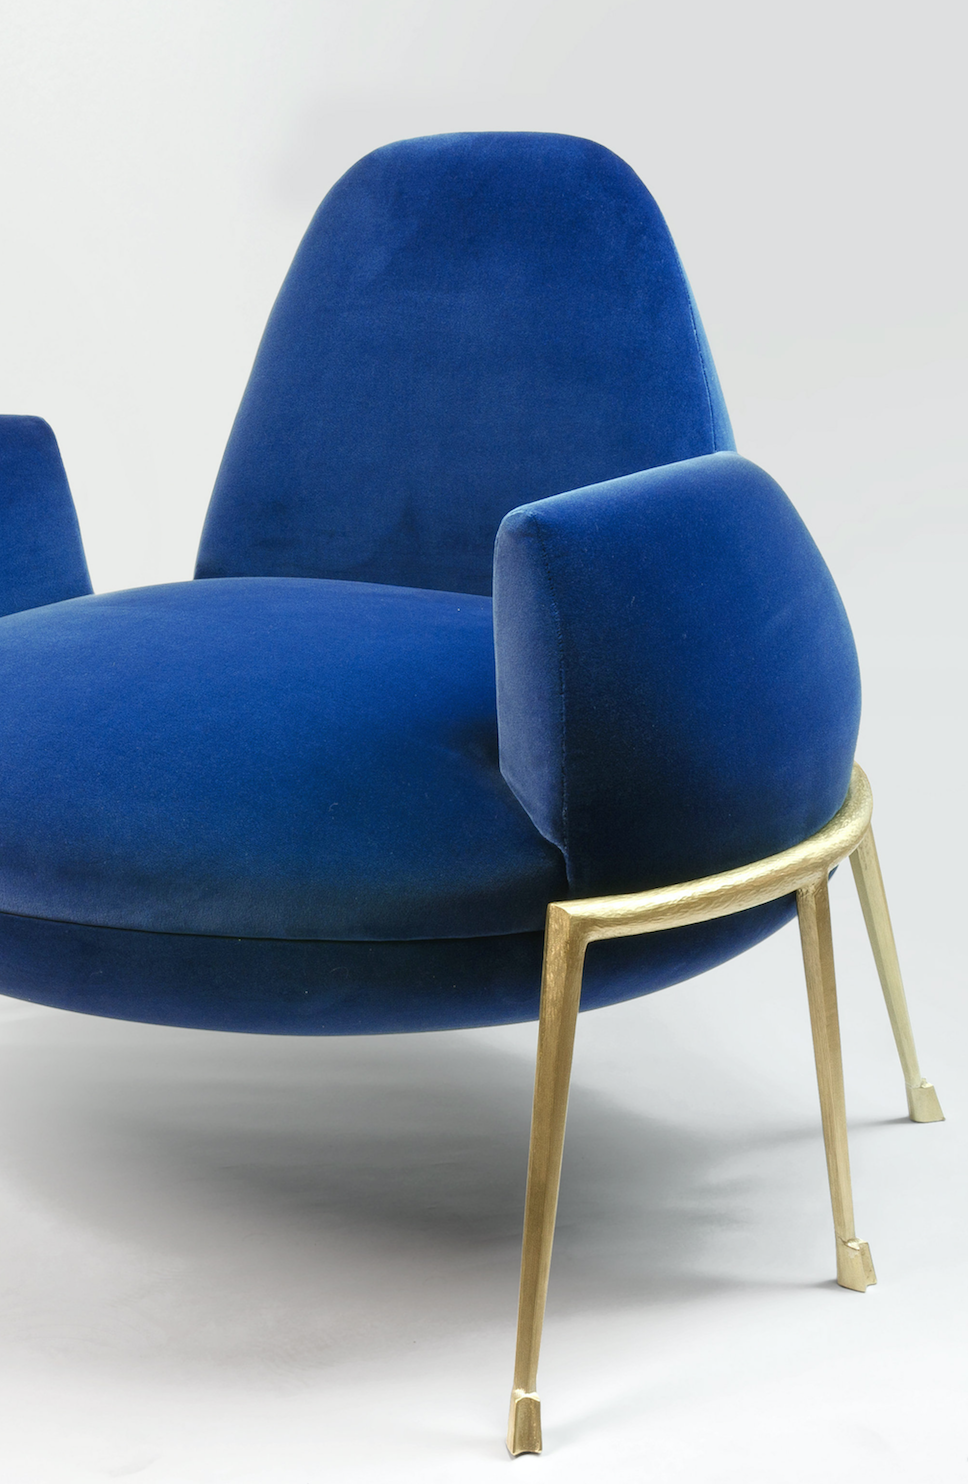 Pin By Anna Mangini On Chairs Pinterest # Duartee Muebles